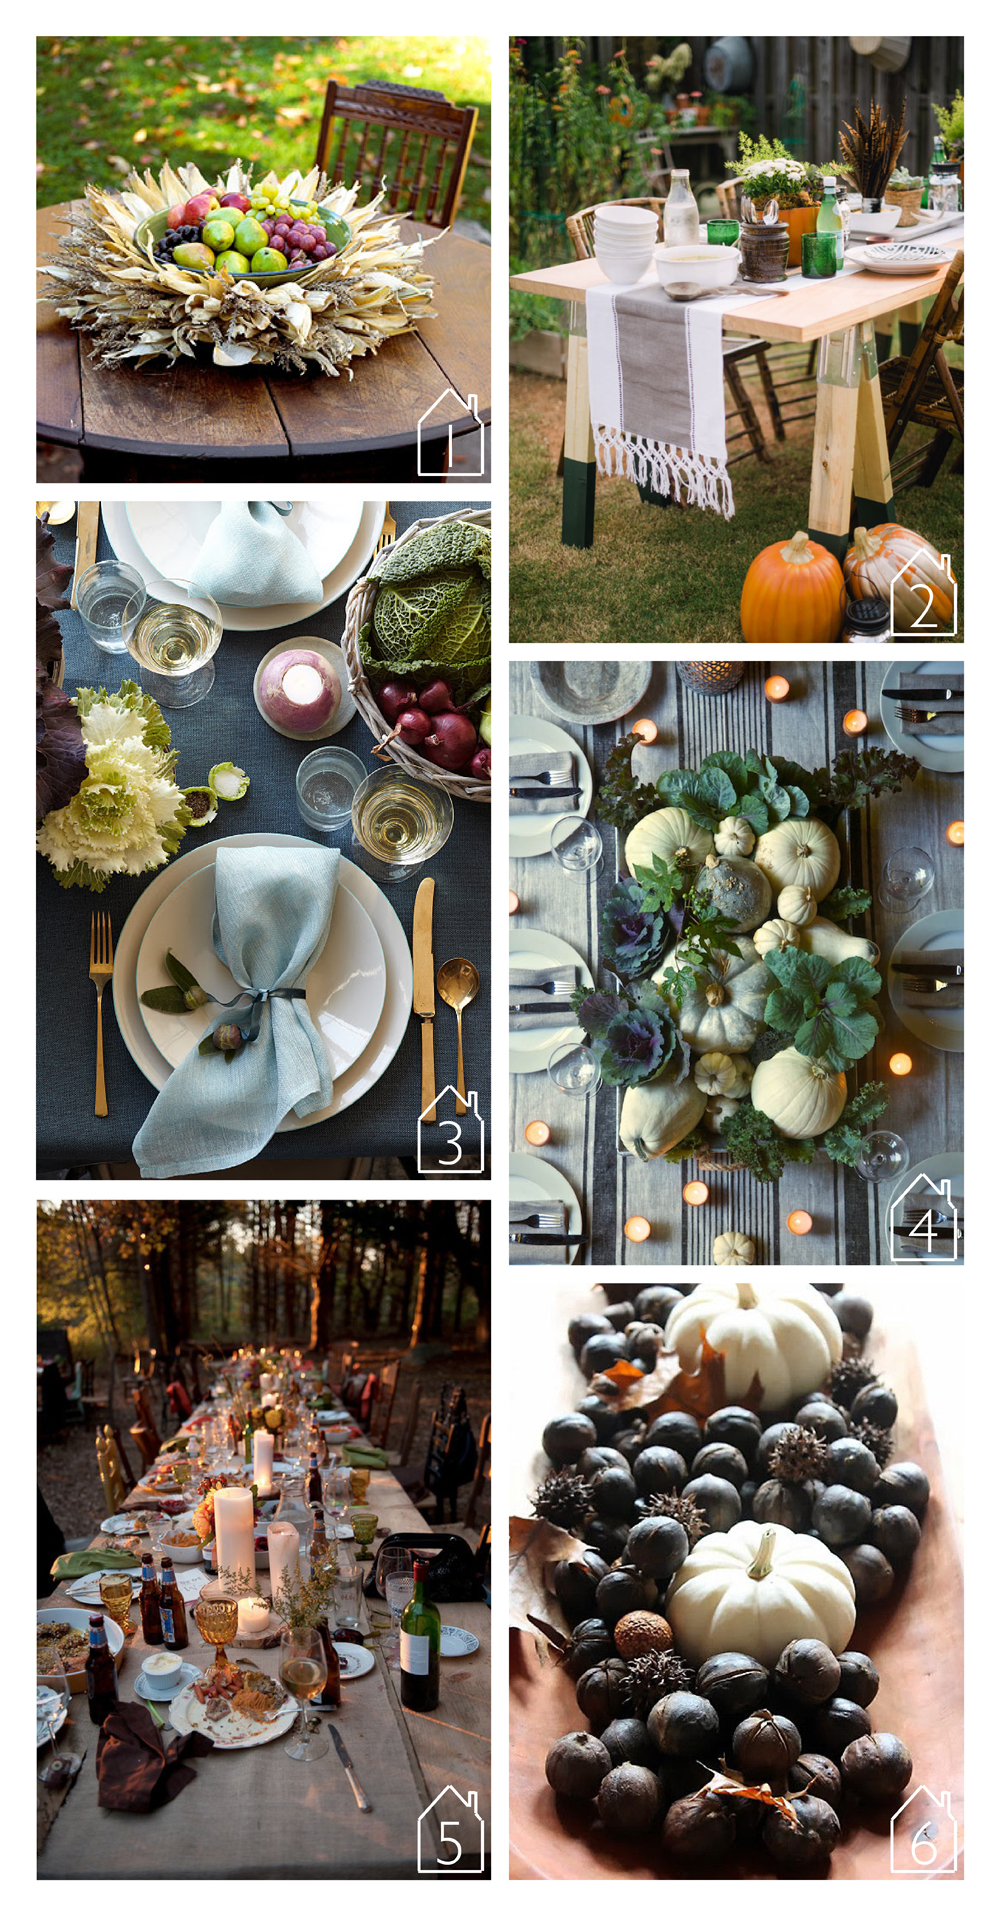 1. cornhusk centerpiece via  BHG   2. saw horse table via  Home Depot   3. Martha Stewart table via  martha moments  - photos by Marcus Nilsson  4. pumpkin centerpiece via  The Daily Basics  originally found in Country Gardens Magazine with photos by Karin Lidbeck   5. photo via  Southern Silver instagram   6. pumpkins and chestnuts via  One Kings Lane